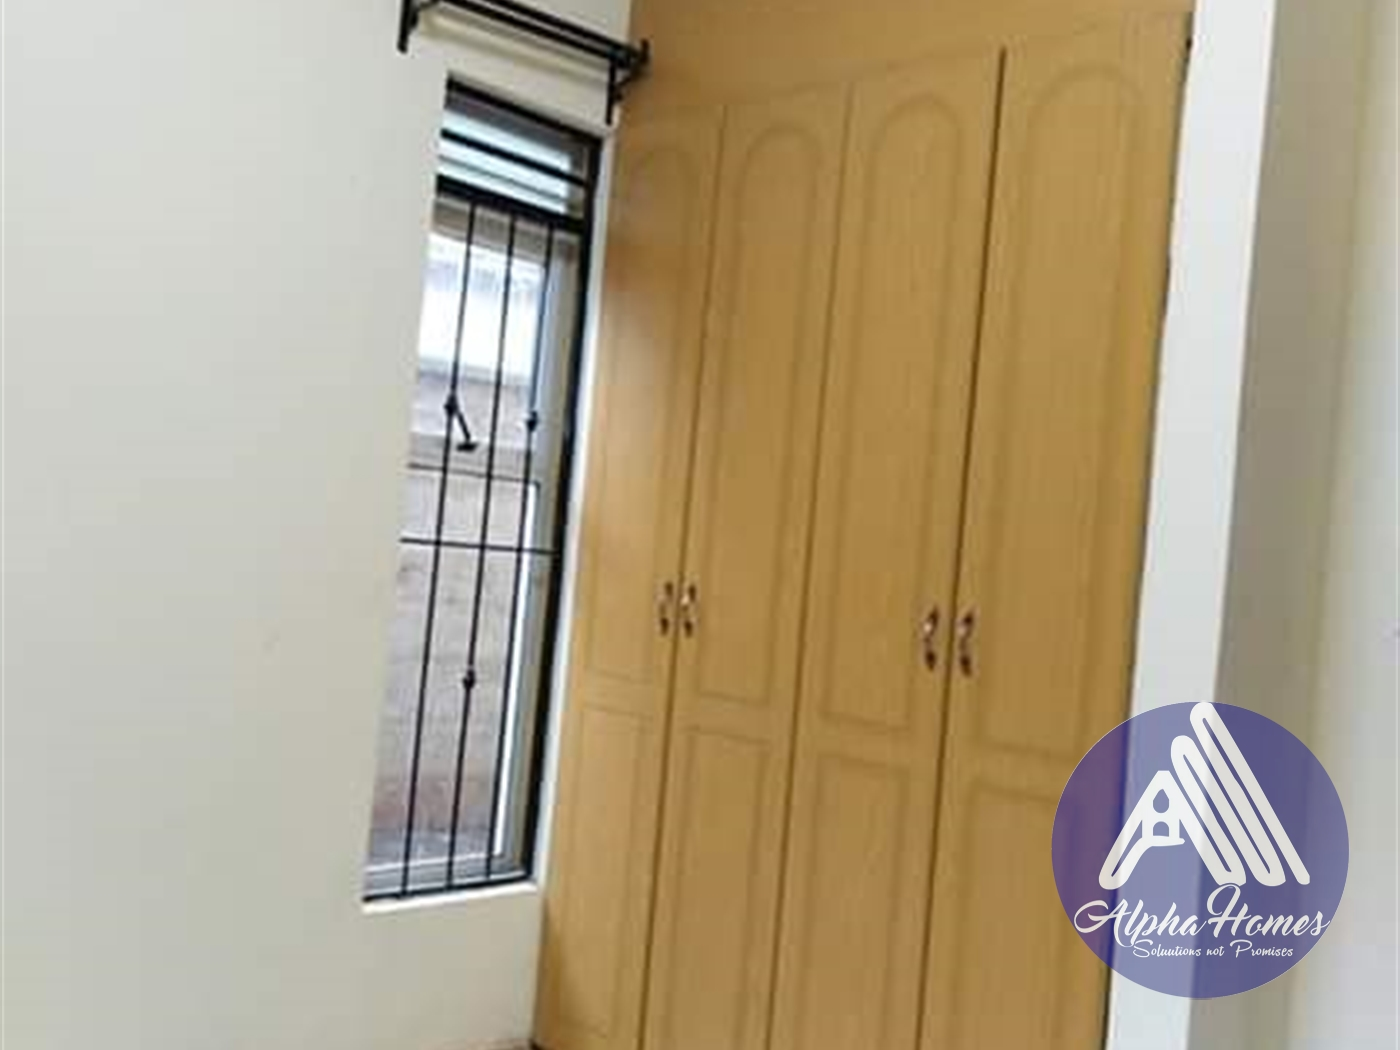 Apartment for rent in Kyanja Wakiso